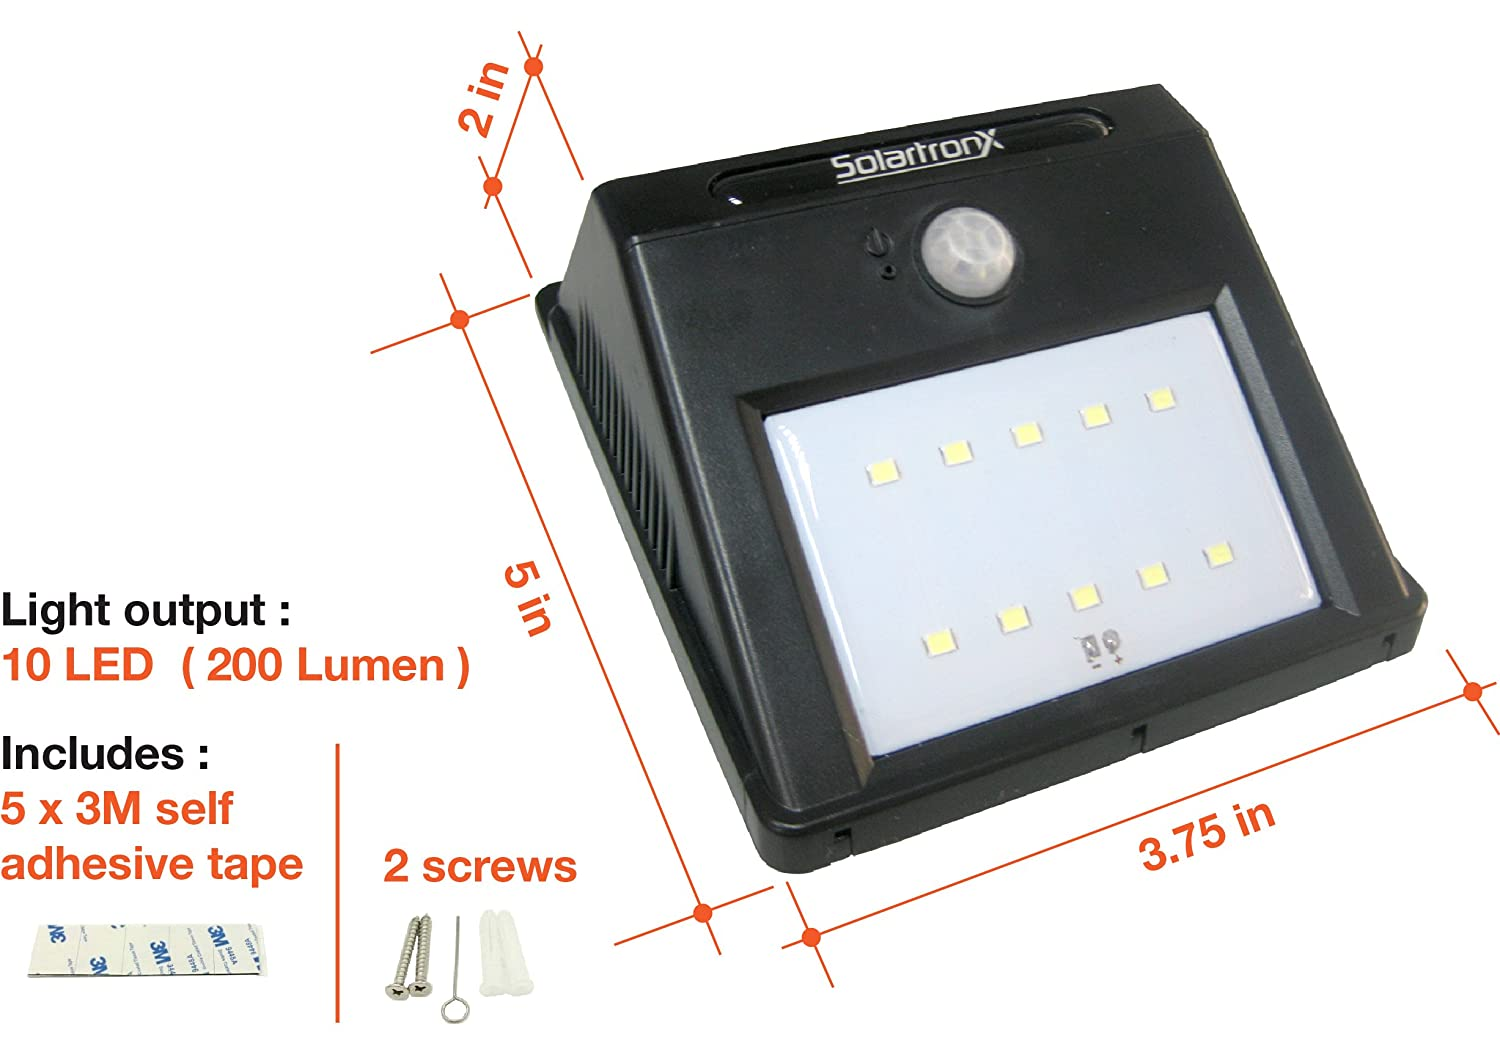 Amazon 10 led motion sensor solar light dusk to dawn security amazon 10 led motion sensor solar light dusk to dawn security lighting for outdoors ideal for walkway garden yard deck patio fence and outdoor aloadofball Image collections